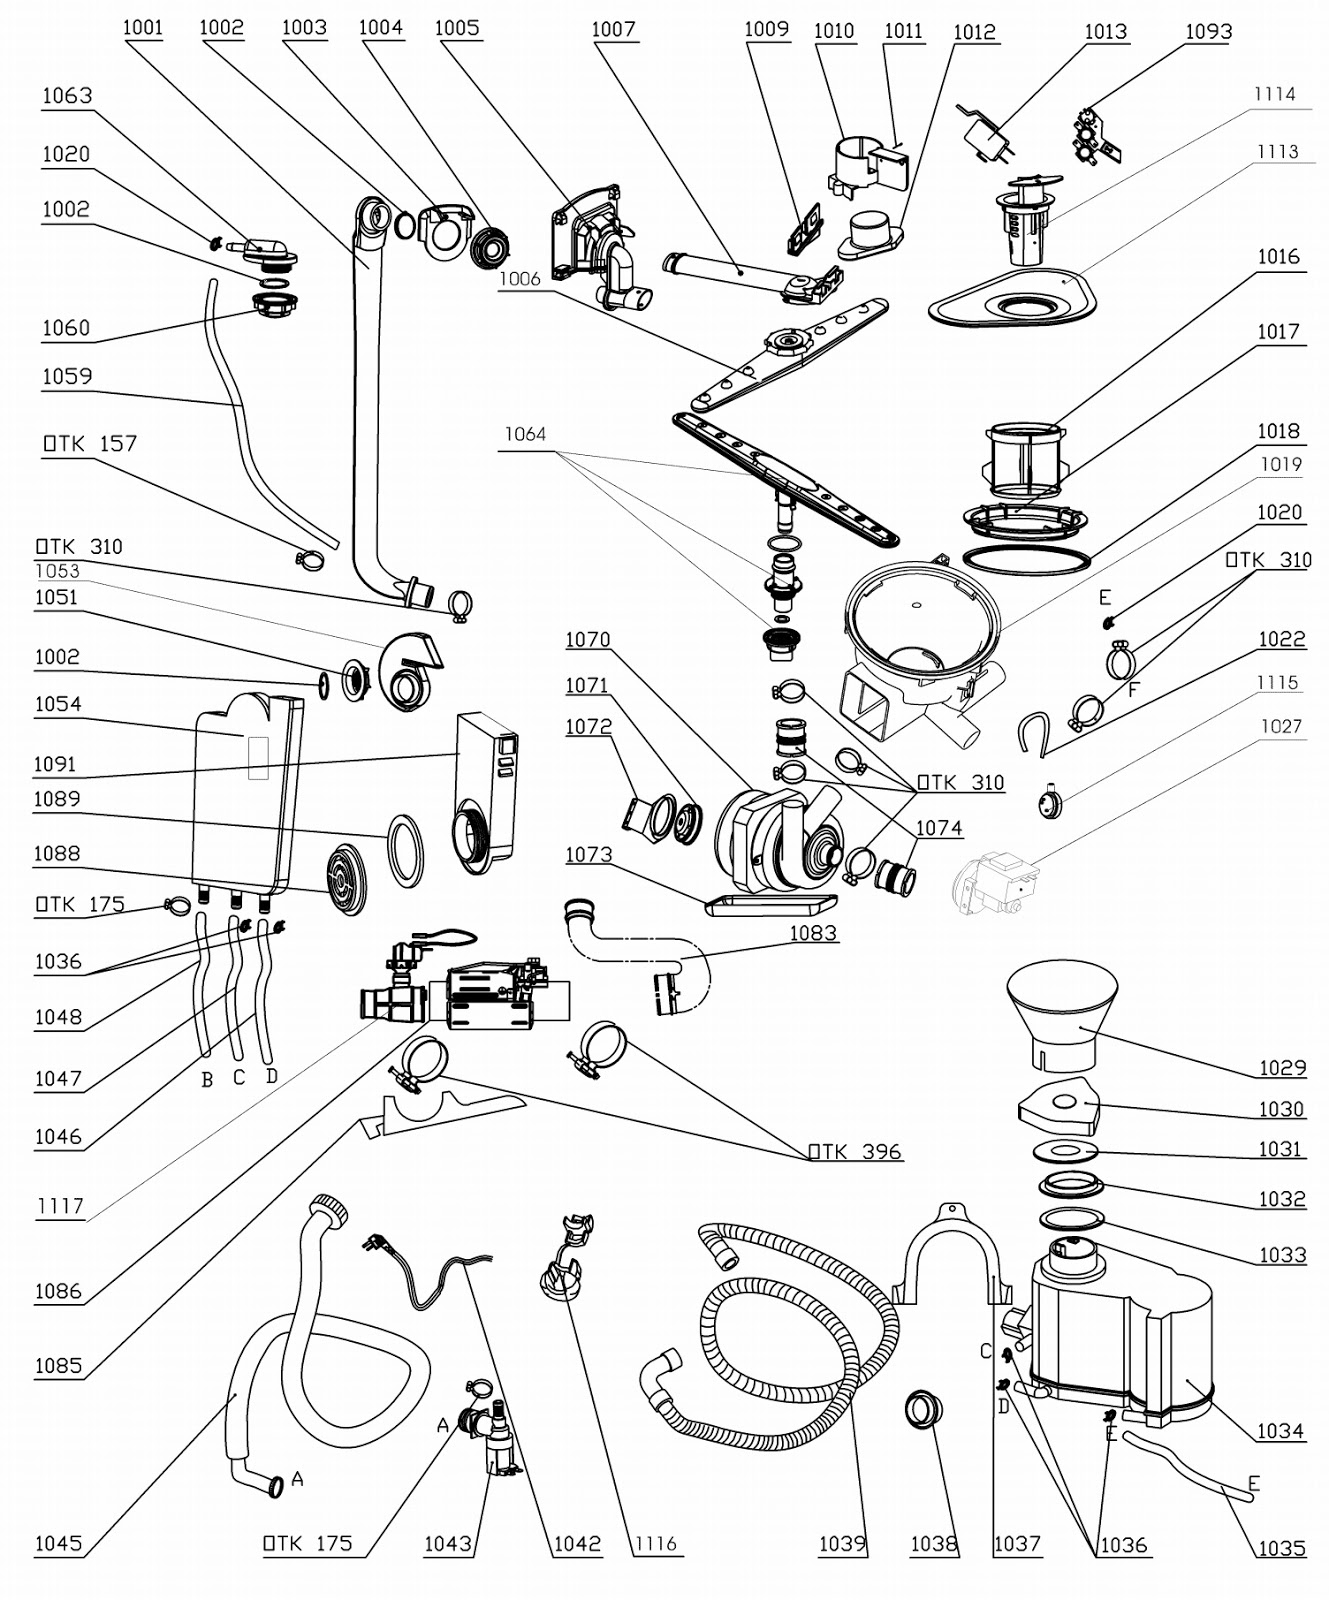 Camera Wiring Diagram 2011 Gmc Acadia 2004 Gmc Envoy Xl